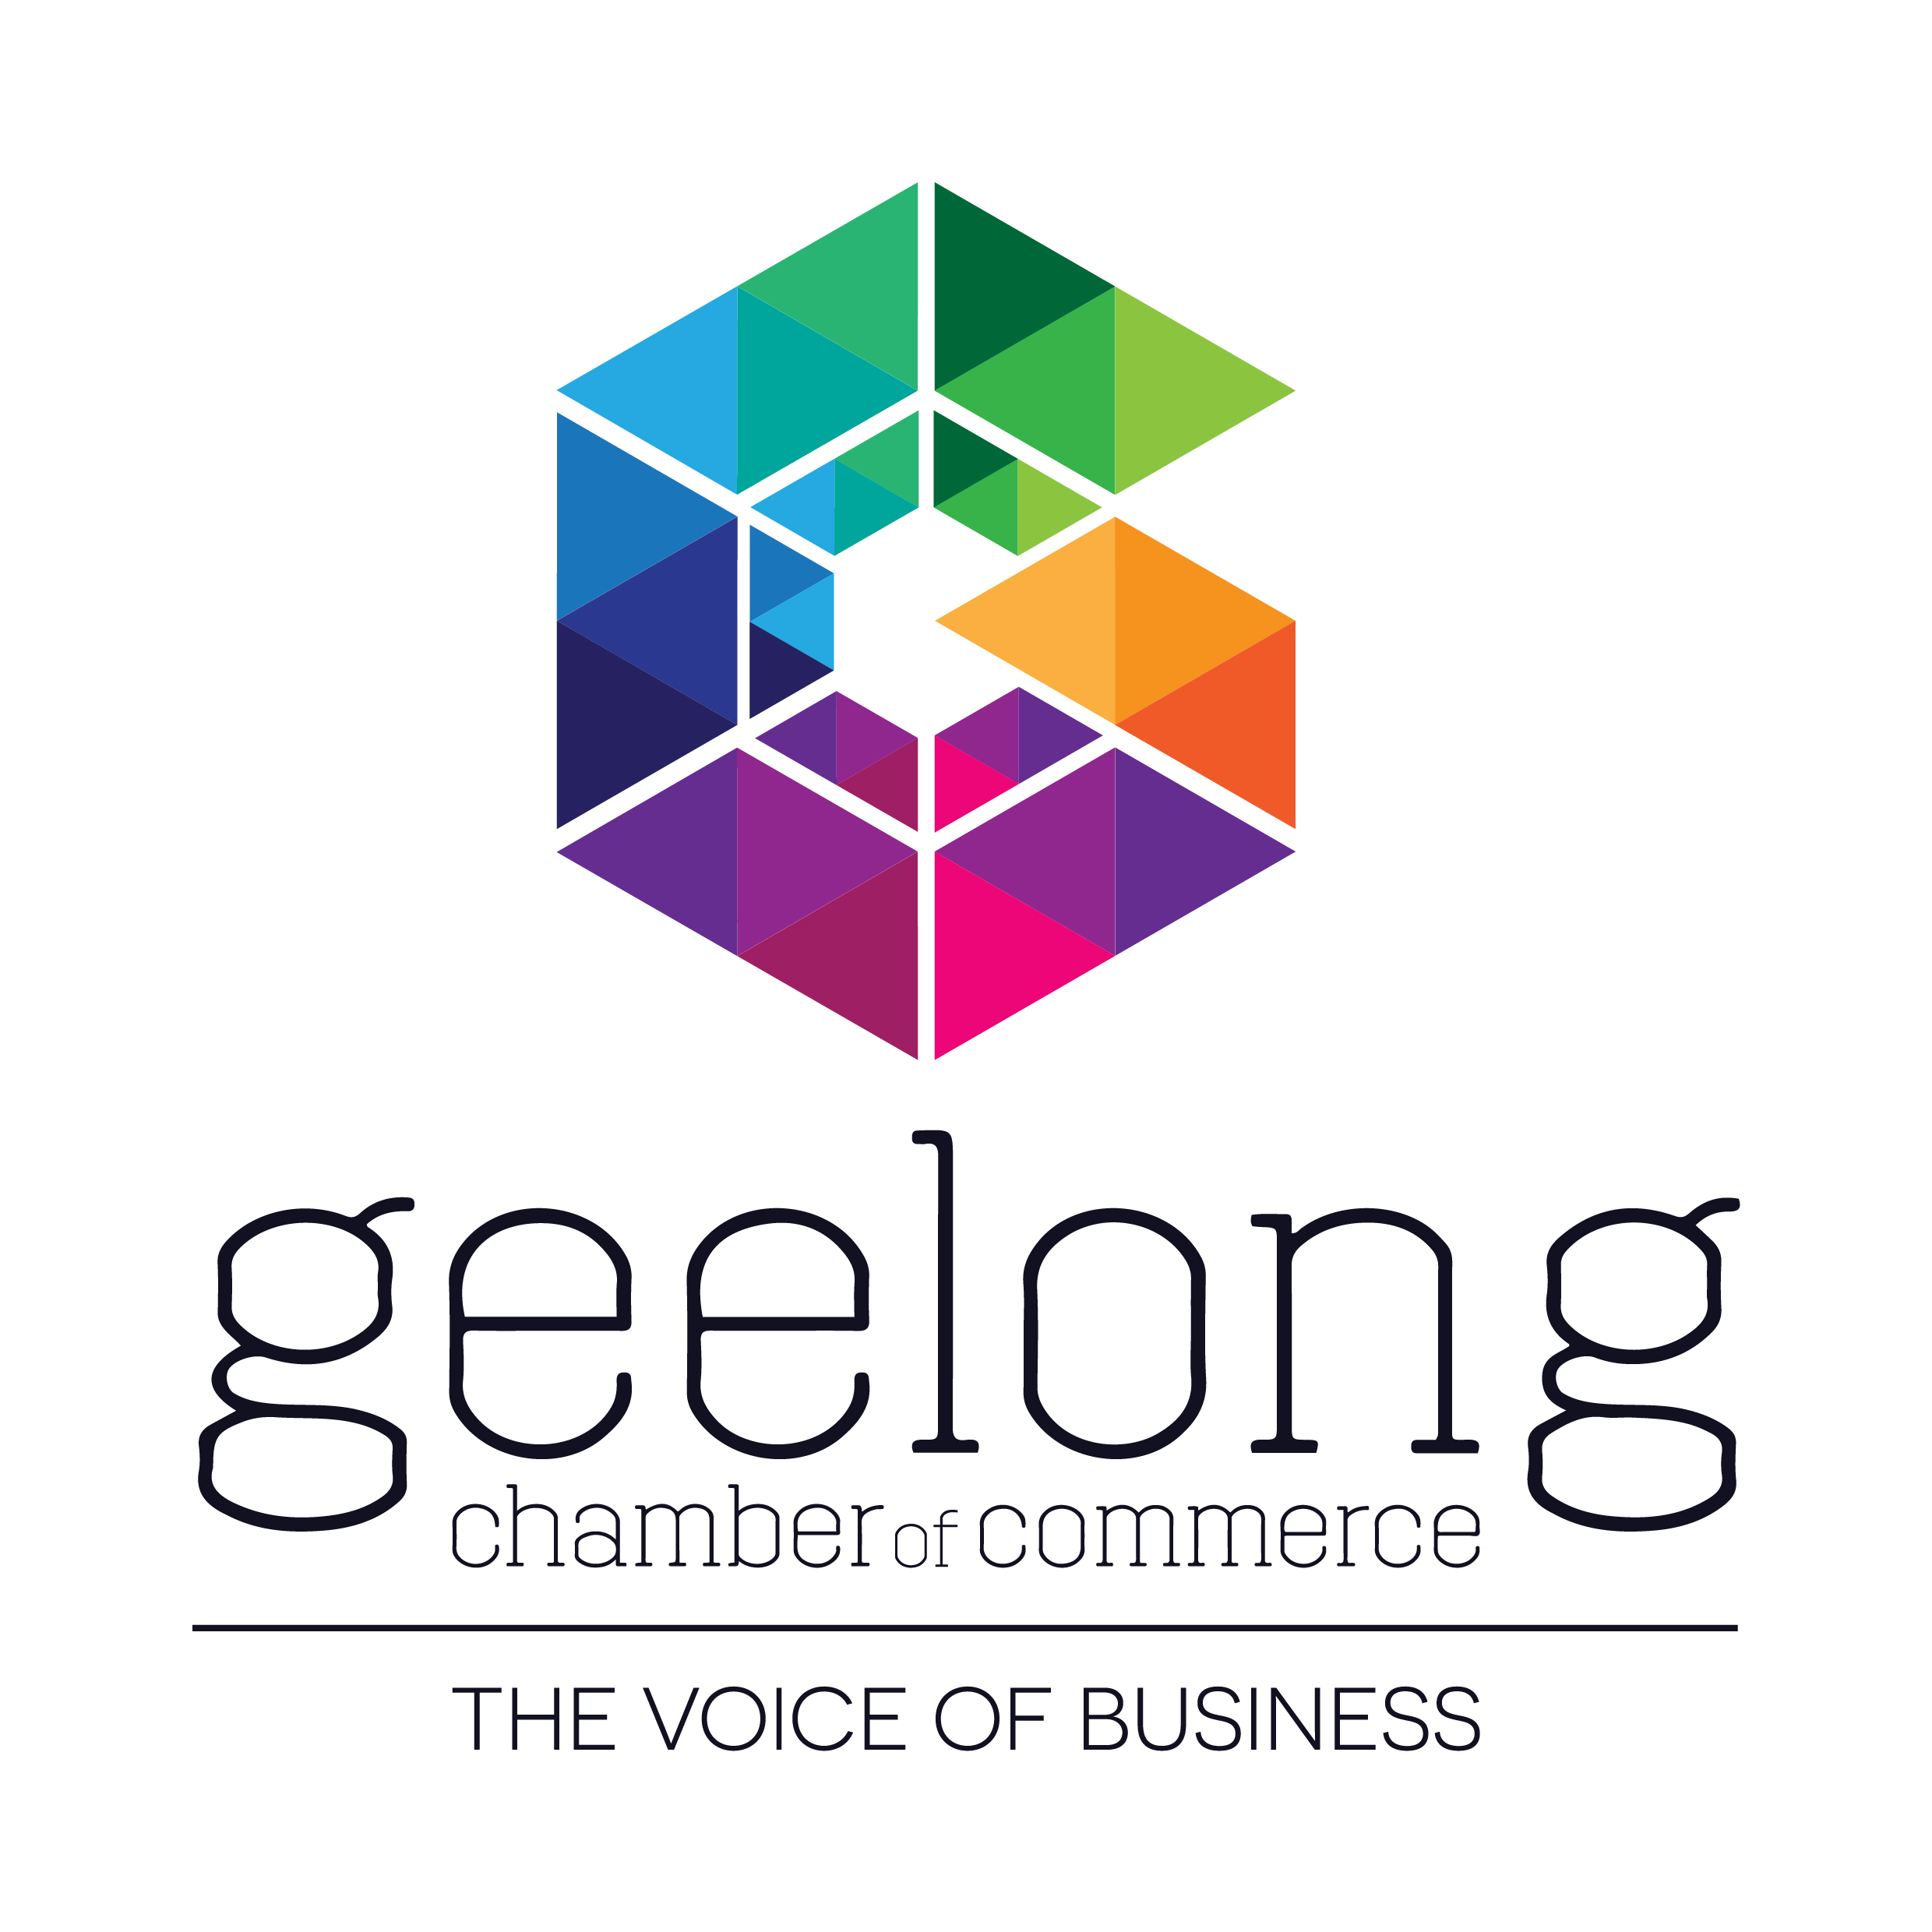 Geelong Chamber of Commerce - 7/7/17